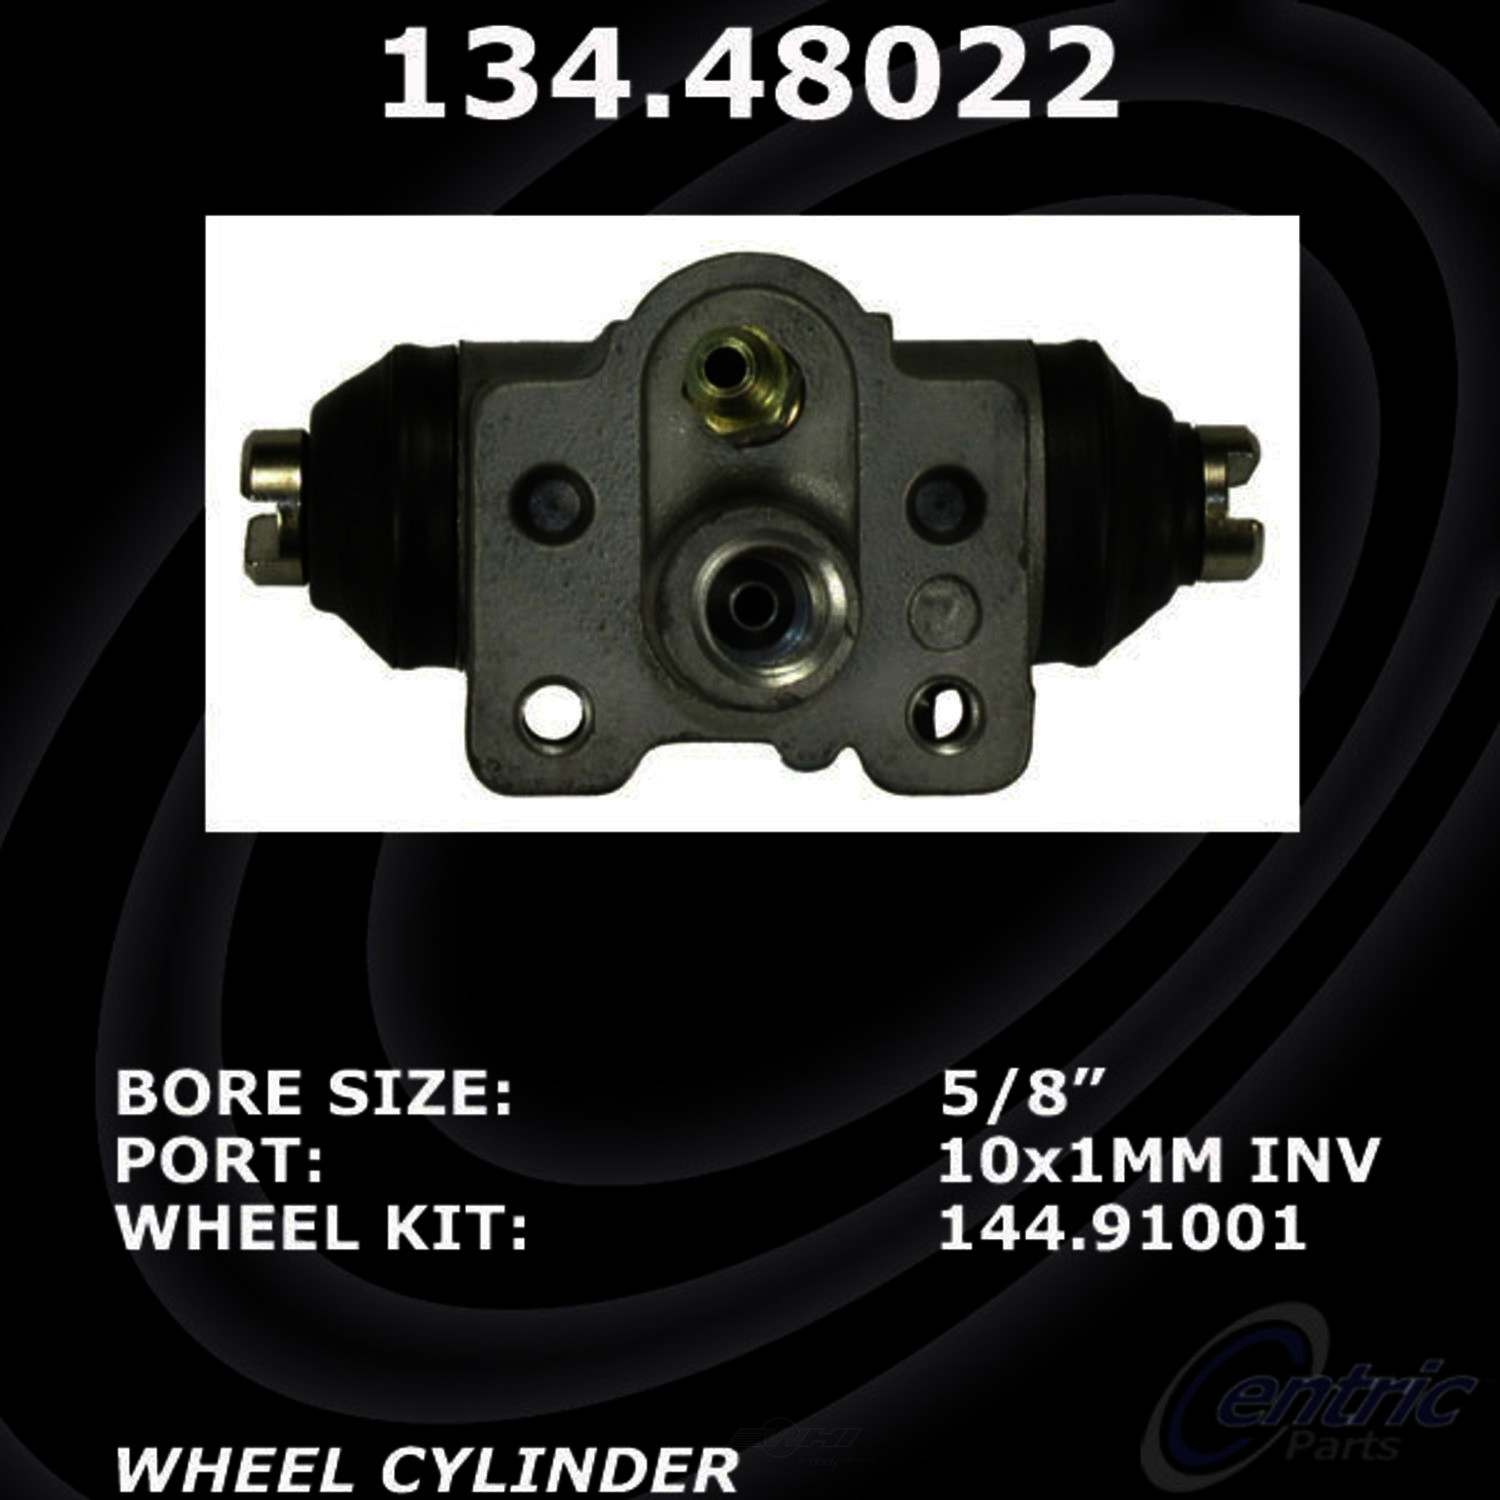 CENTRIC PARTS - Premium Wheel Cylinder-Preferred (Rear Left) - CEC 134.48022